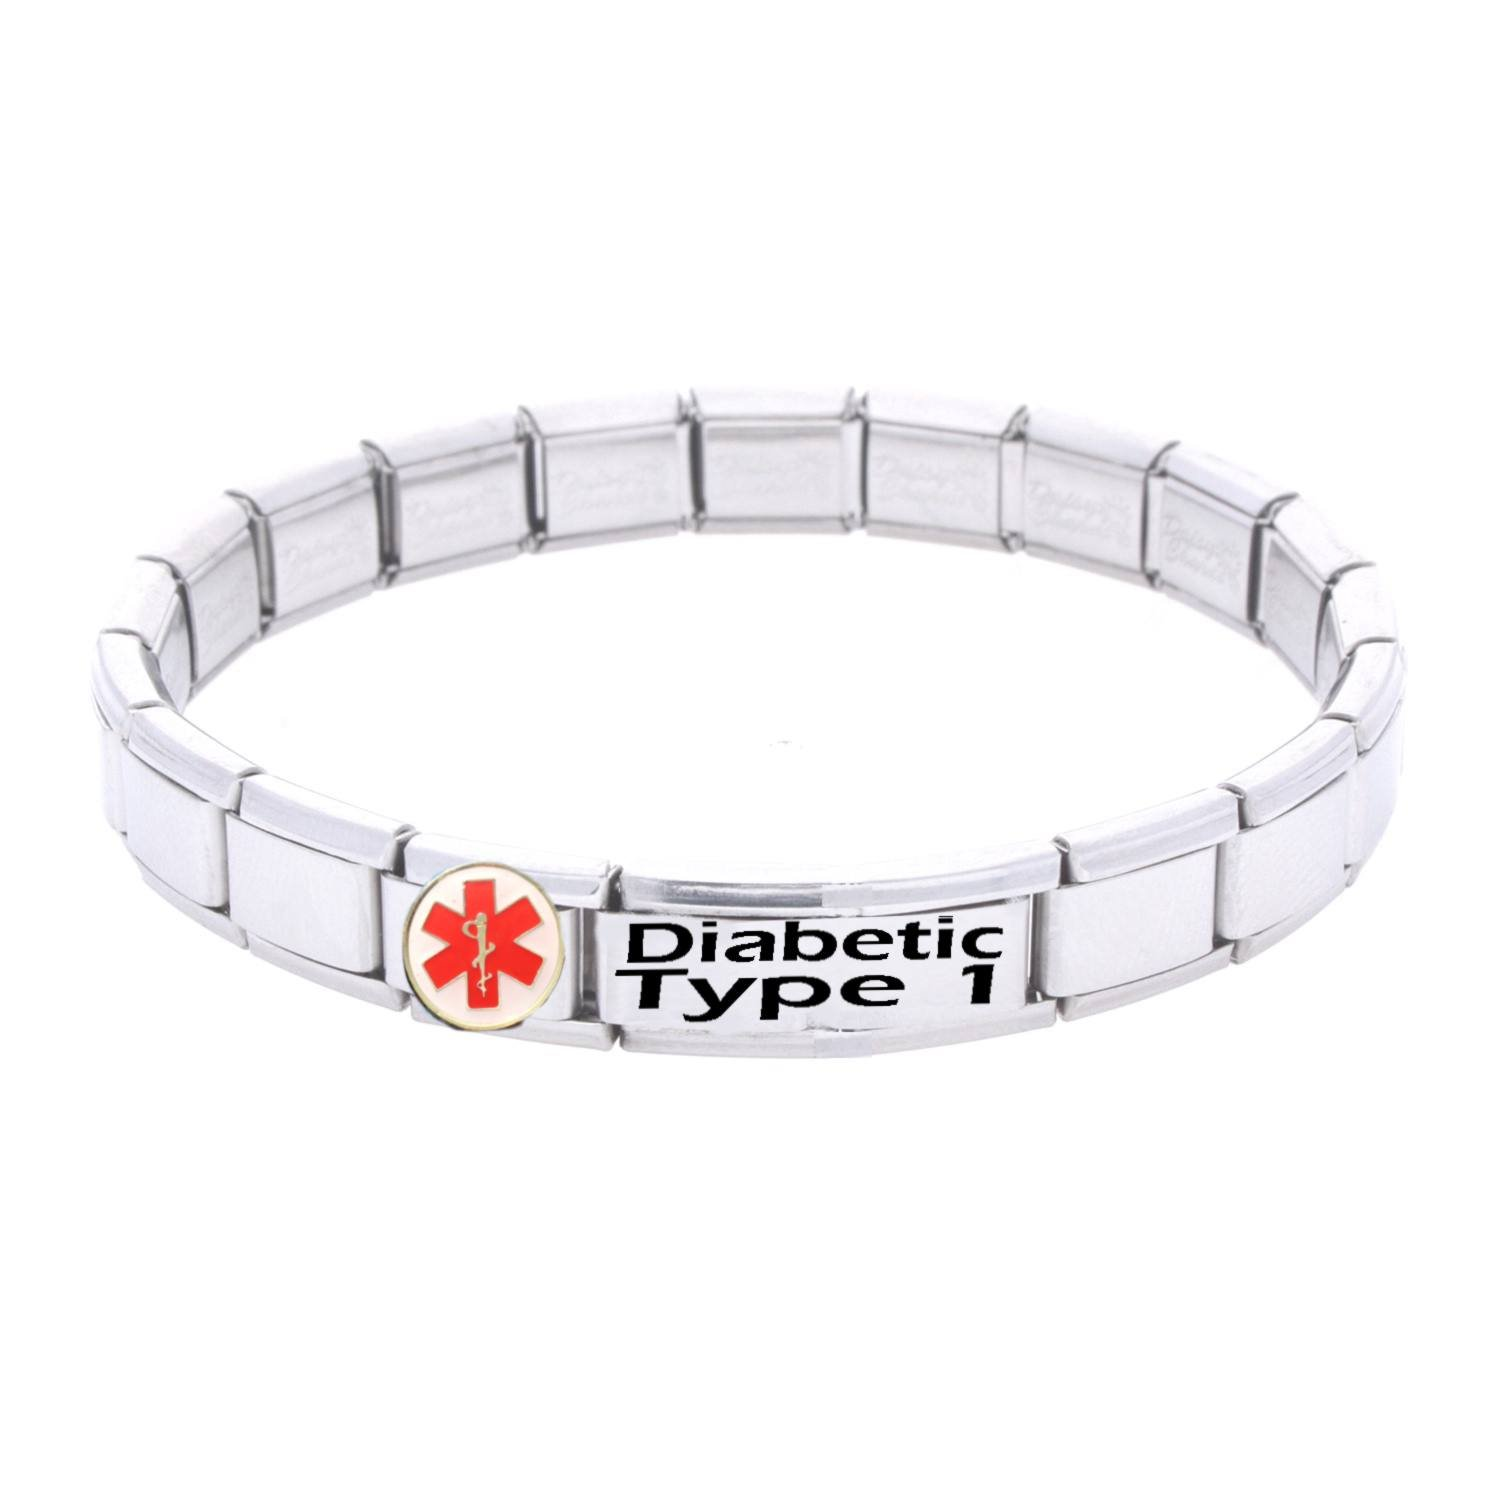 jewelry diabetes id bracelet type pin alert diabetic medical